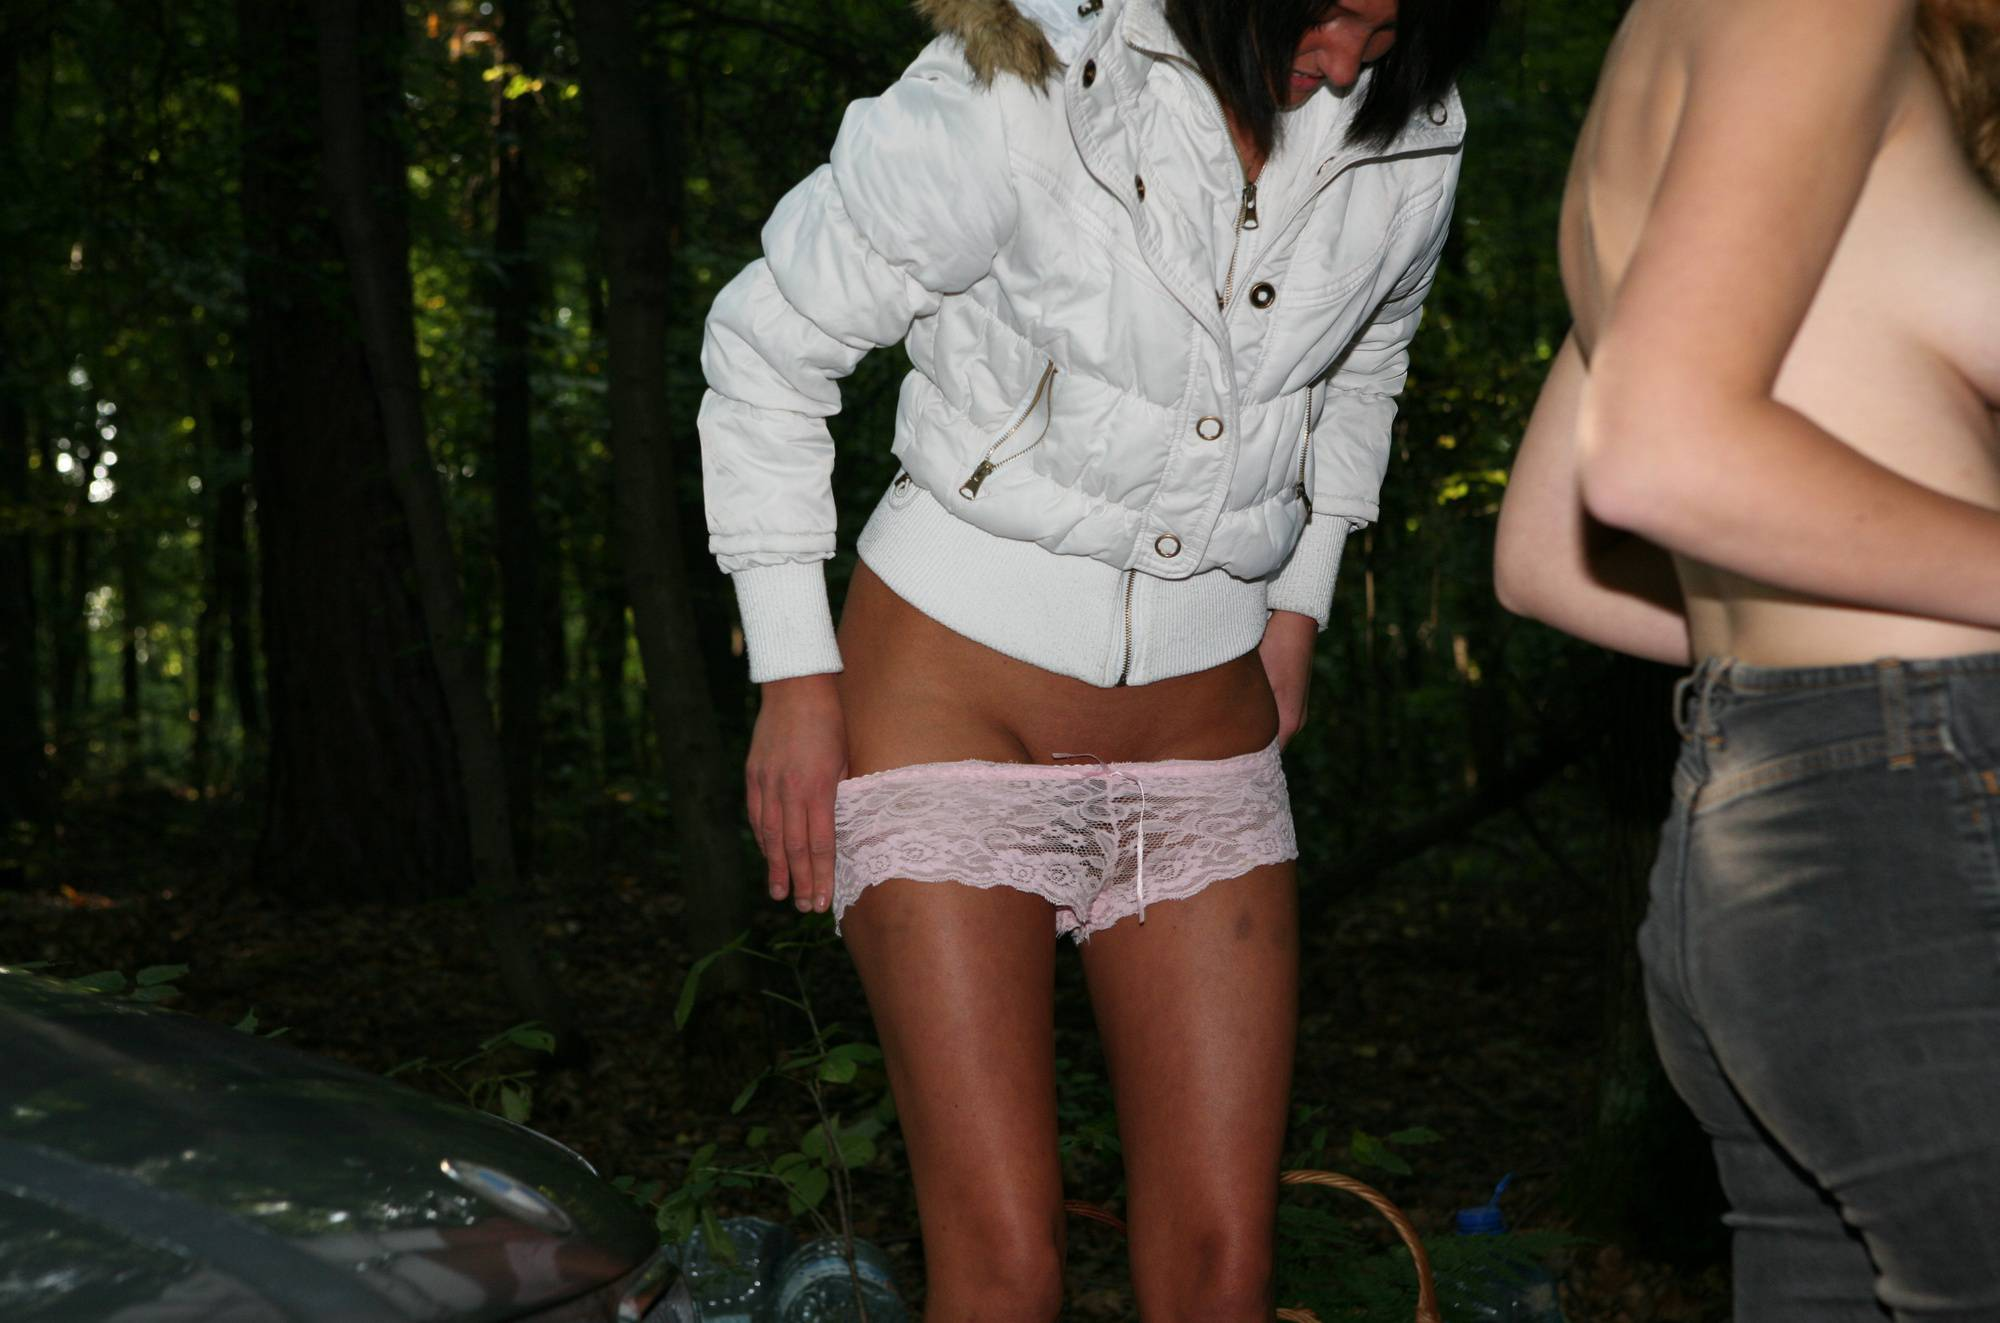 Pure Nudism Images-Forest Girls Dressing Up - 1